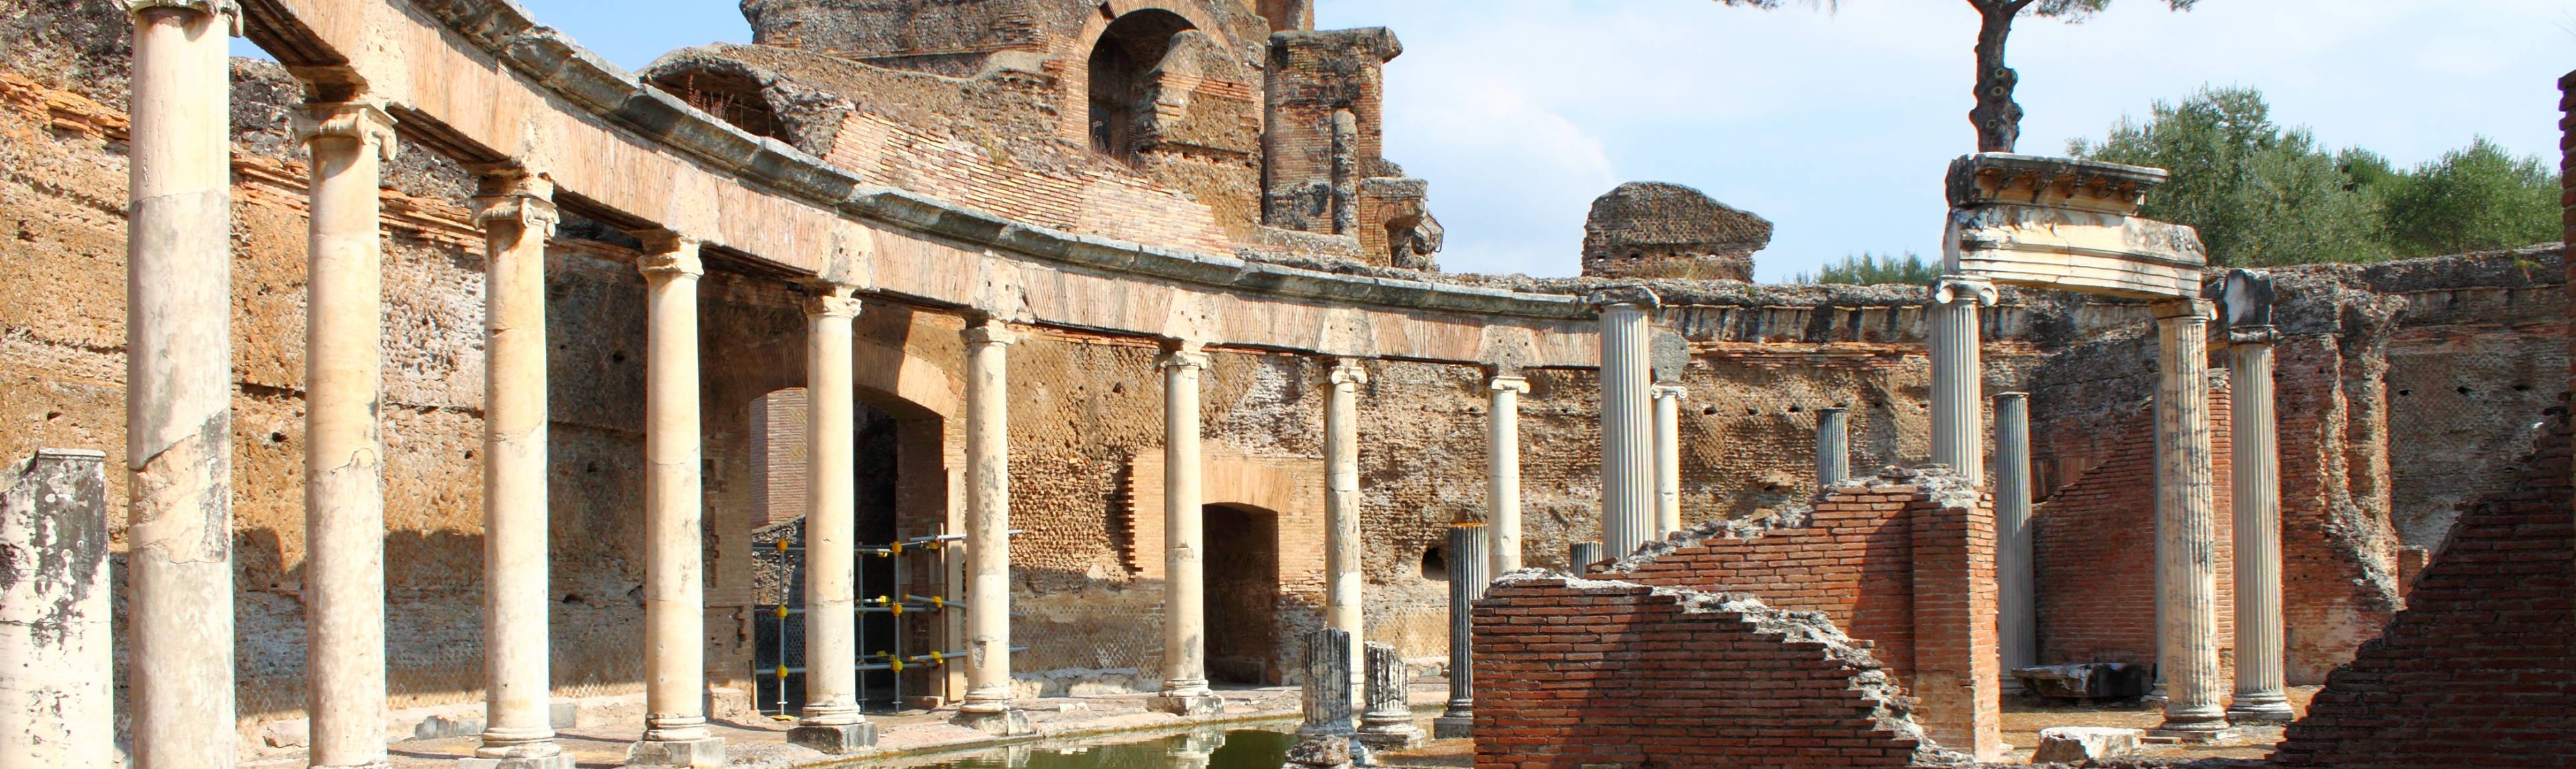 Columns surround Naval Theater at Hadrian's Villa near Rome